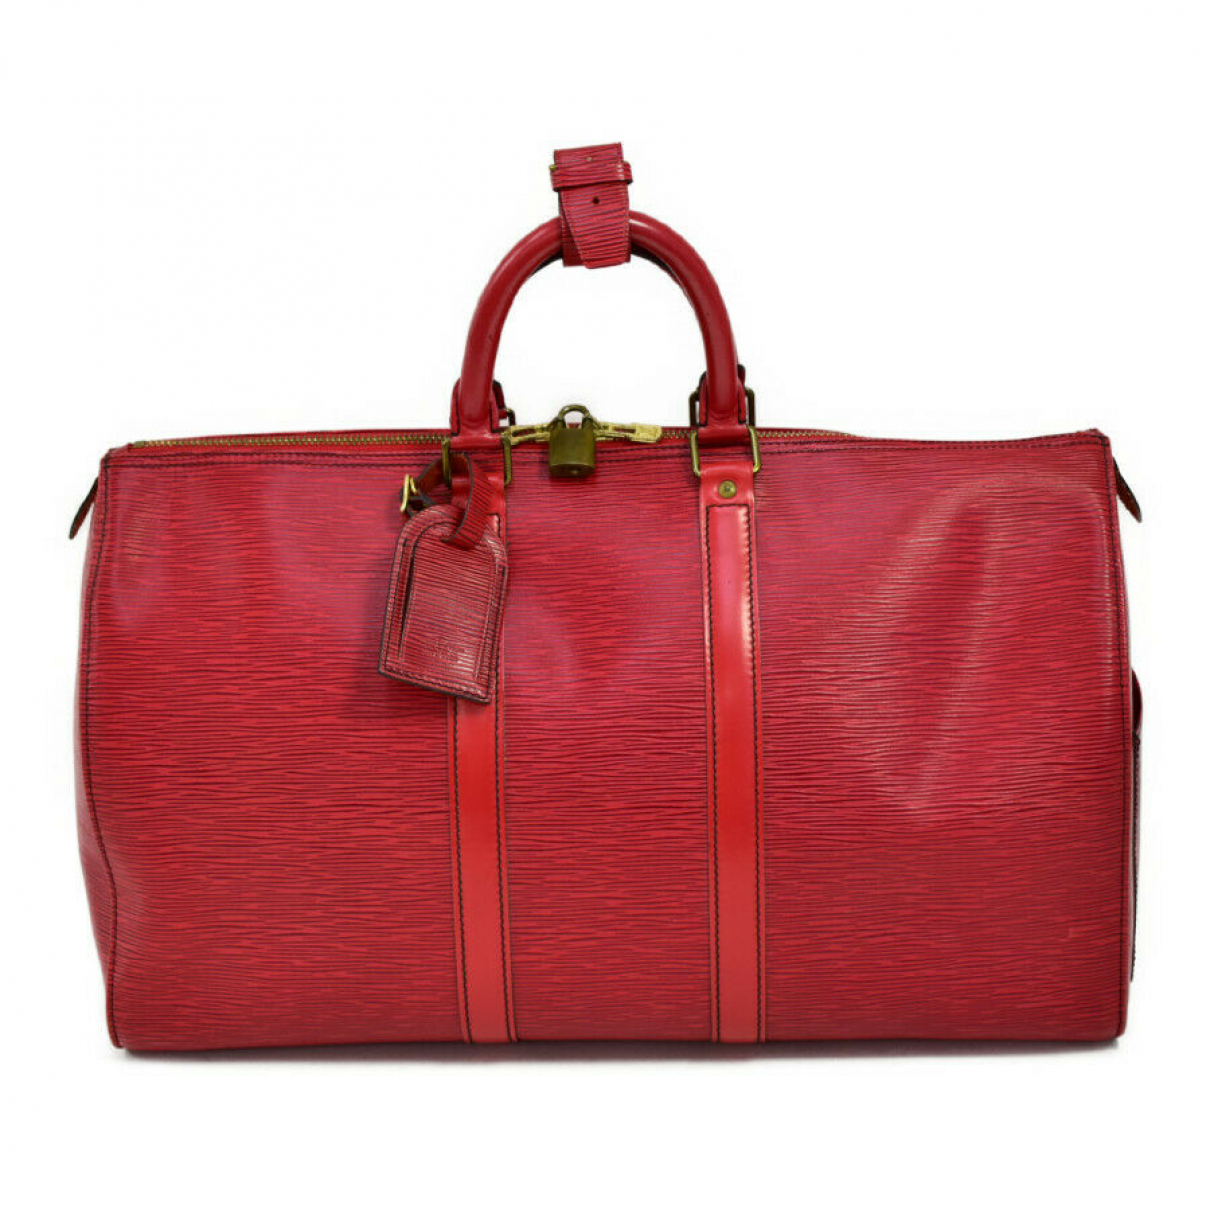 Louis Vuitton N Red Leather Travel bag for Women N